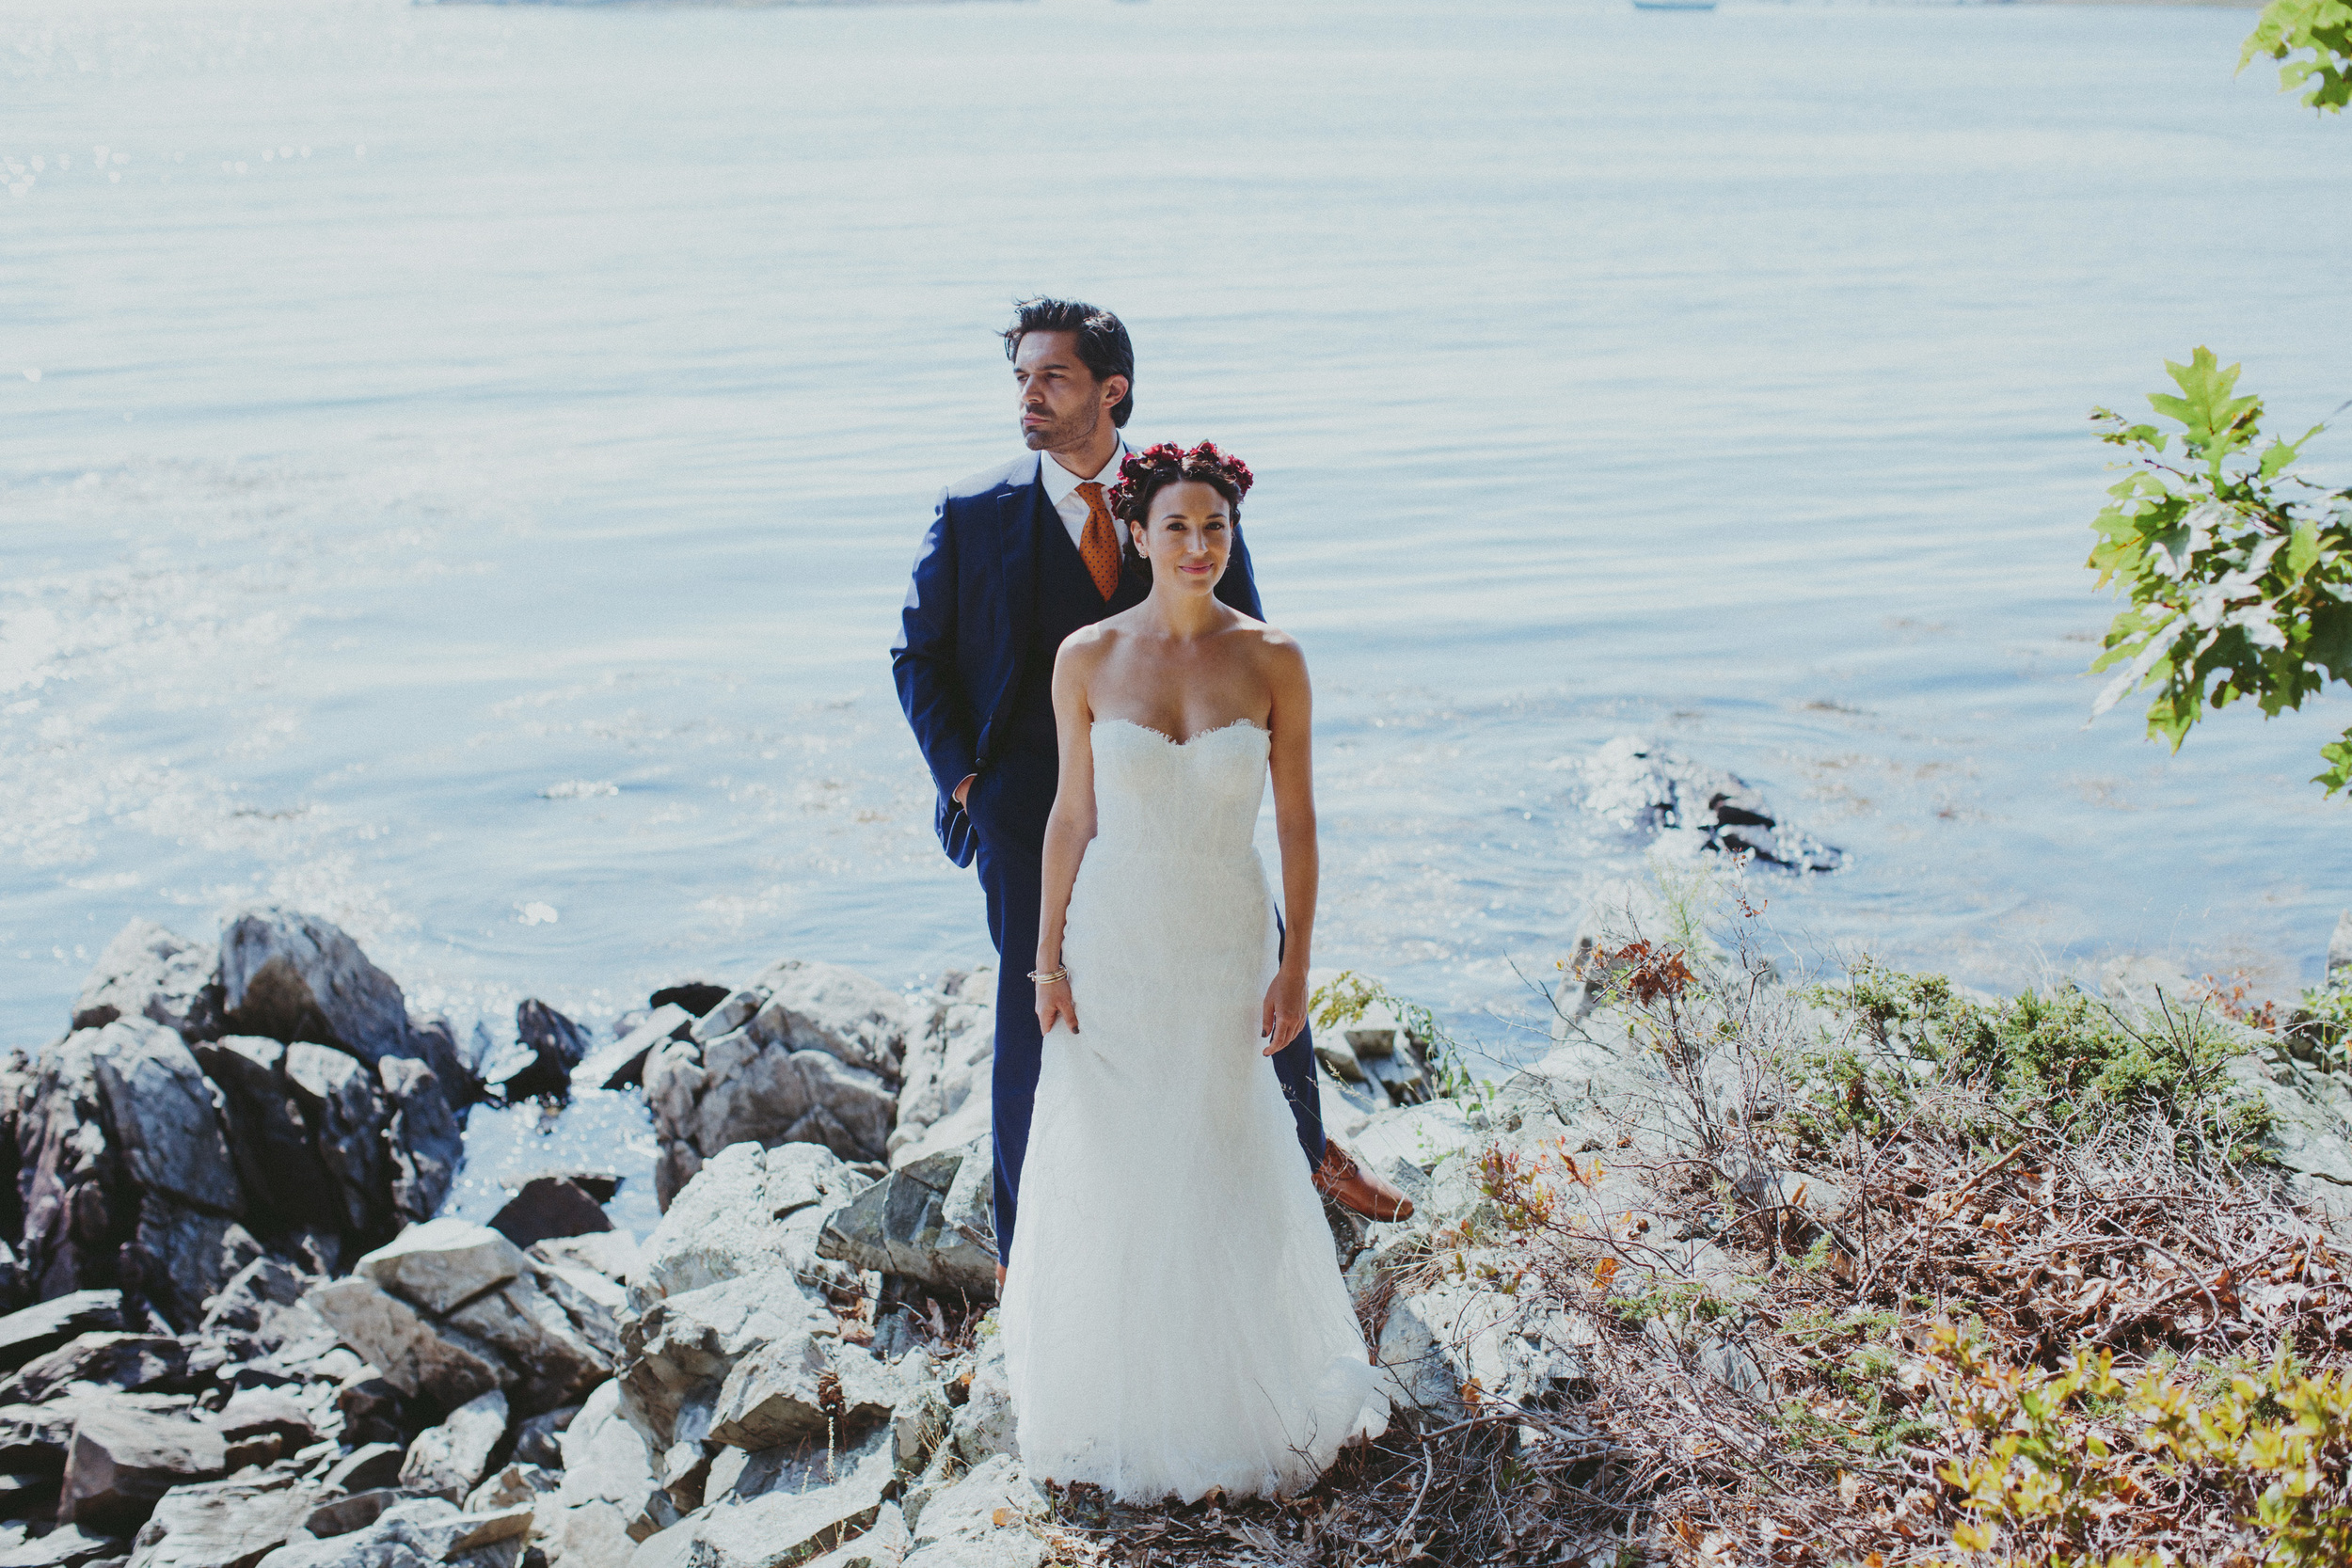 Maineriverwedding